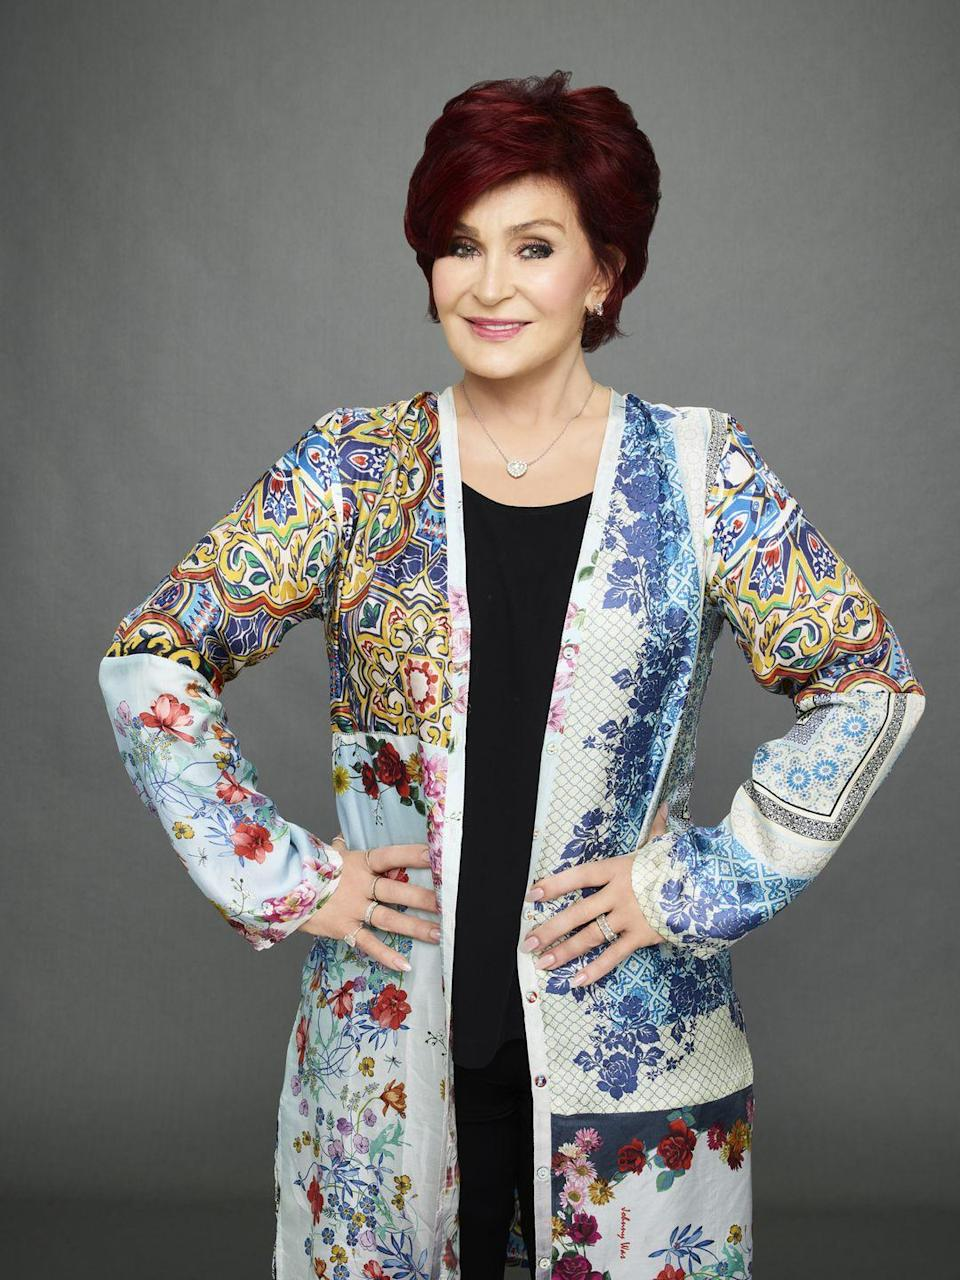 "<p><em>The Talk </em>co-host Sharon Osbourne <a href=""https://torontosun.com/2016/08/10/sharon-osbourne-on-plastic-surgery-ive-got-my-third-face/wcm/2672e8e2-a867-4435-a6de-d430b1d7e06e"" rel=""nofollow noopener"" target=""_blank"" data-ylk=""slk:admitted to being on her ""third face"""" class=""link rapid-noclick-resp"">admitted to being on her ""third face""</a> in 2016, though she hasn't always liked what she had done. ""And in a lot of shots, my face looks plastic and at certain angles, I was like, 'Oh, dear. Oh, I should never have done that. Oh, that's a bad one,' "" she said. ""So I'm like, 'No more. No more abuse.'""</p>"